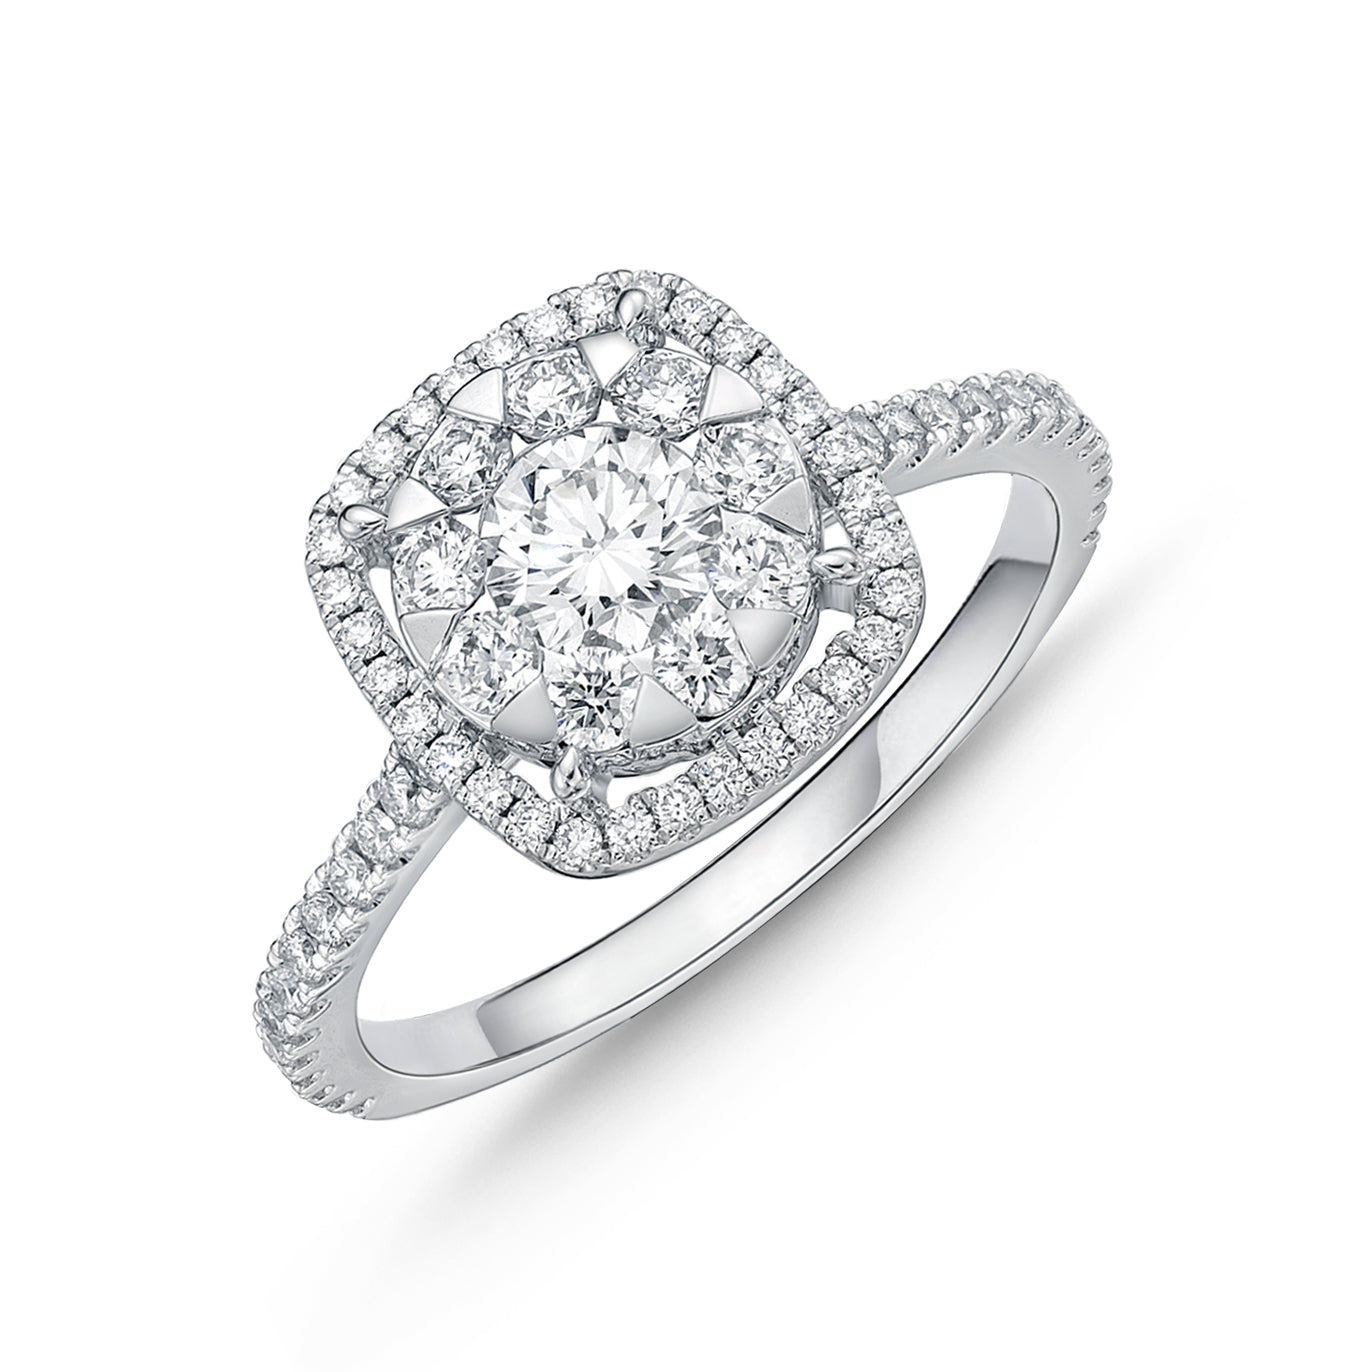 Memoire Bouquet Halo Engagement Ring